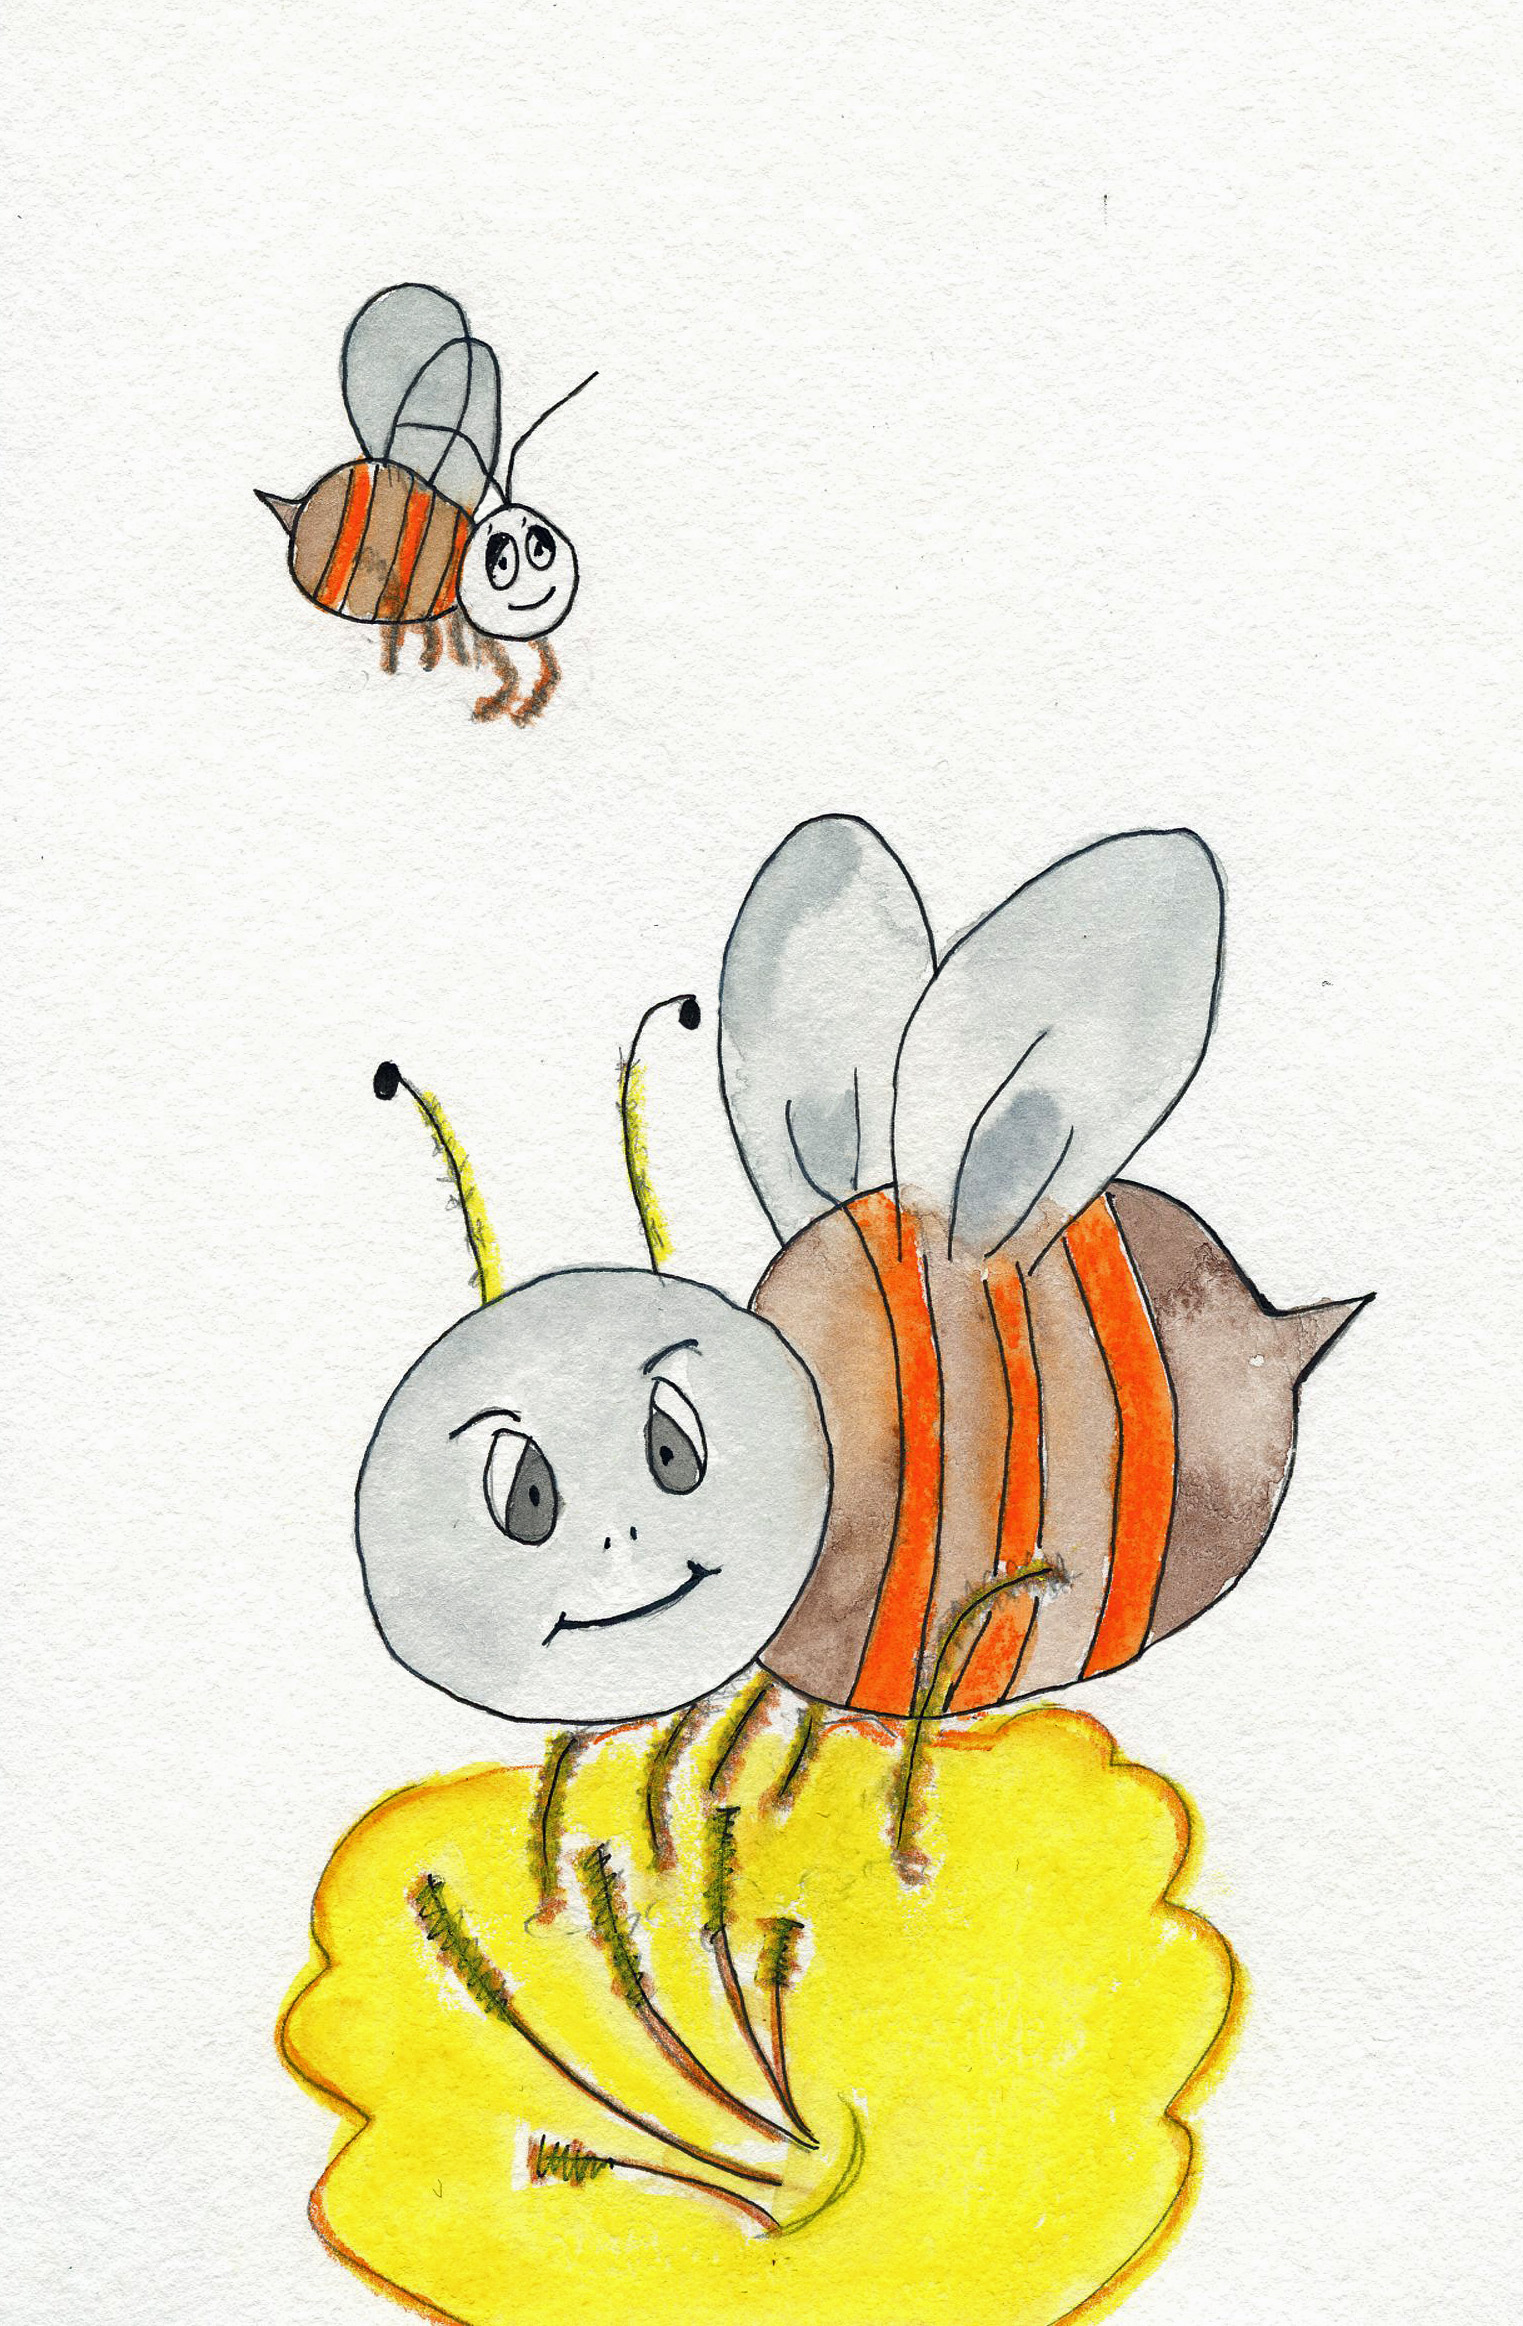 Bee illustration by Books Make Booms illustrator Mary Rensberry.  From the Custom Book BZZZ written by Michigan author and artist Richard Rensberry.